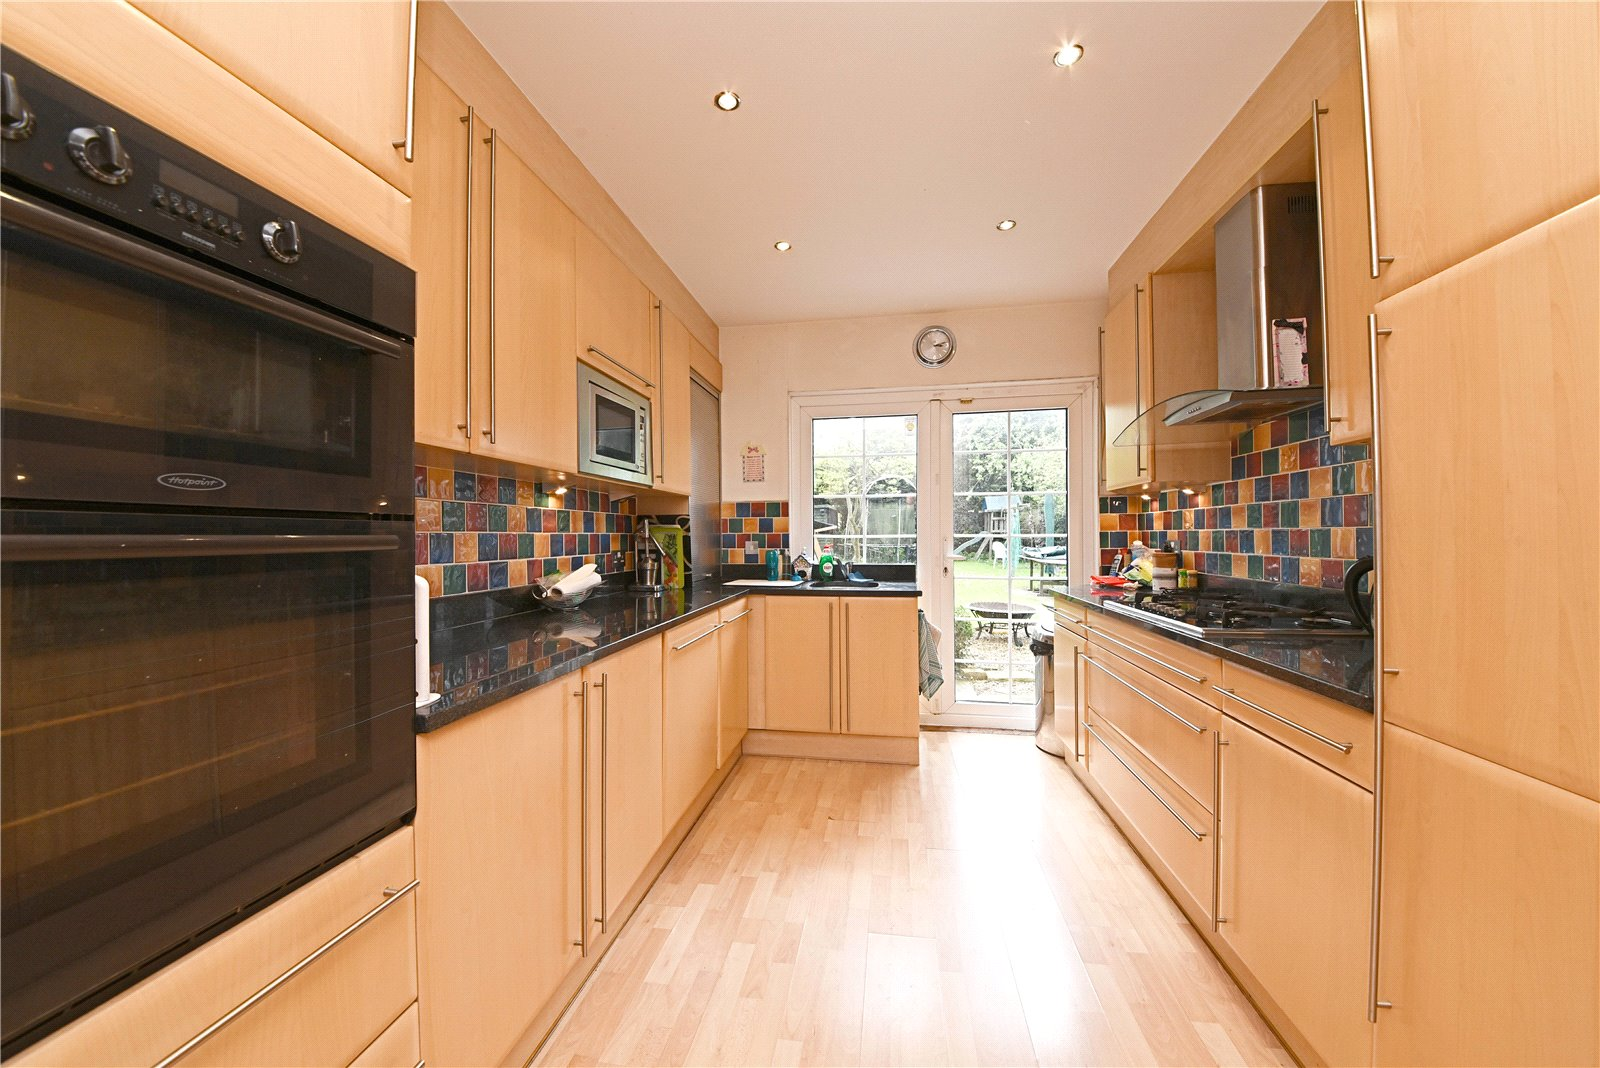 5 bed house for sale in Southgate, N14 4PX 2